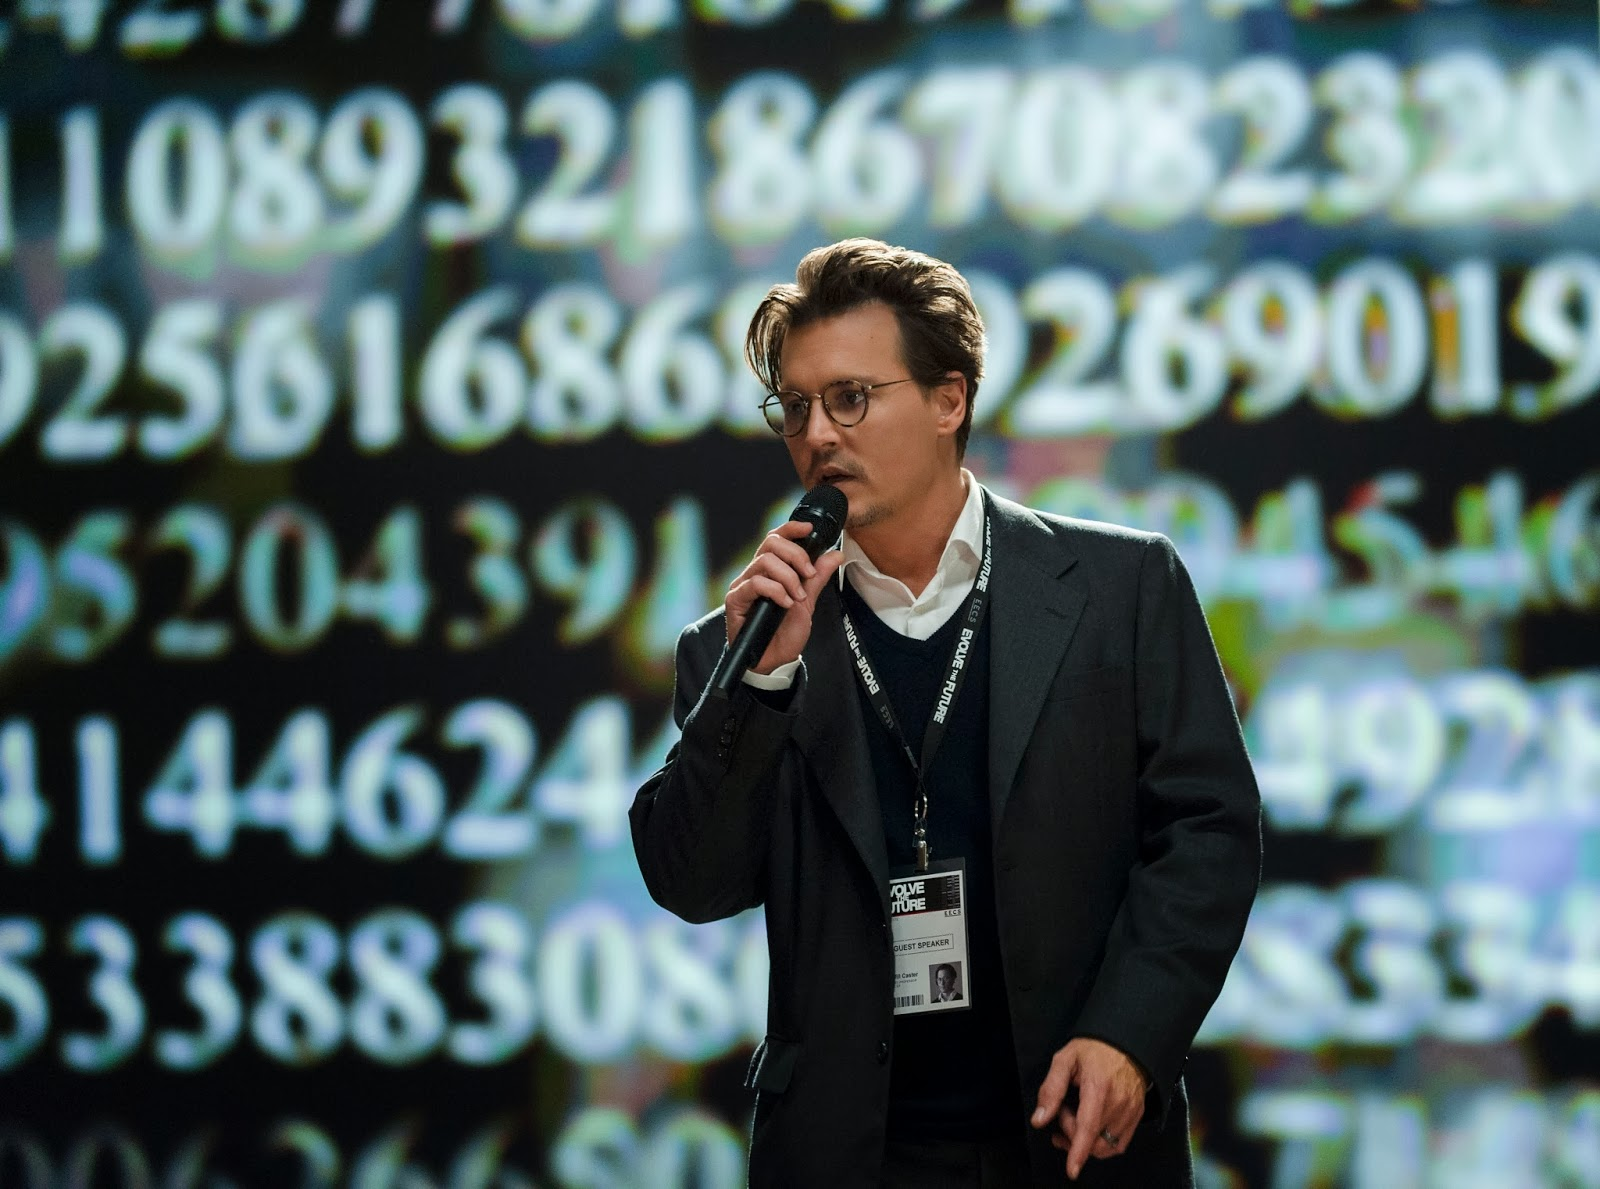 Google chrome themes johnny depp - The Numbers Make Johnny Depp Look Smart Also Glasses